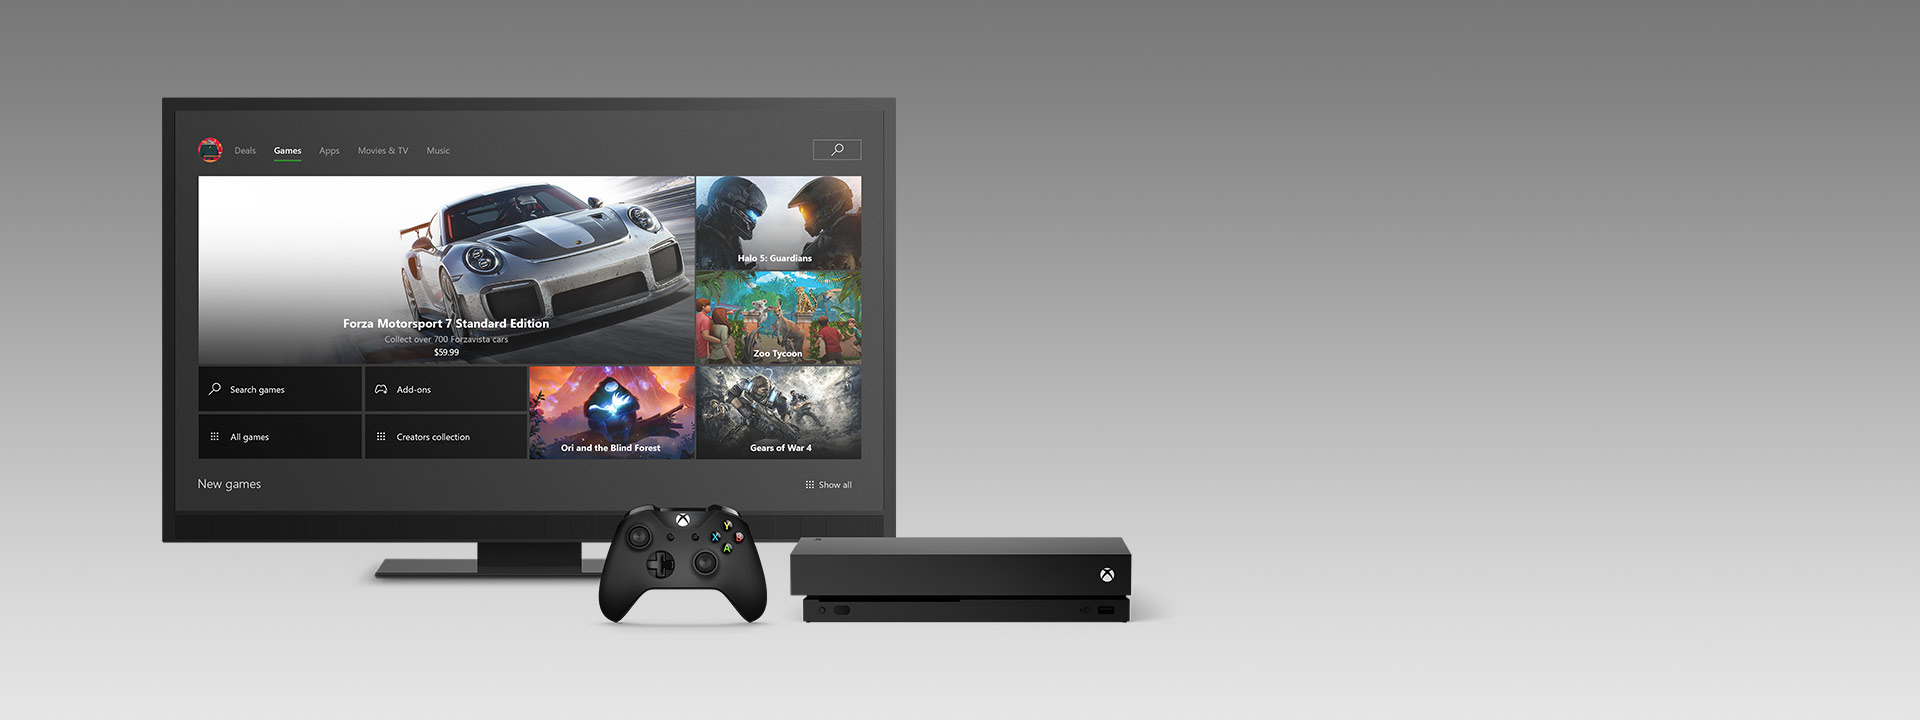 A TV showing the Xbox One Dashboard with an Xbox One X and Controller below